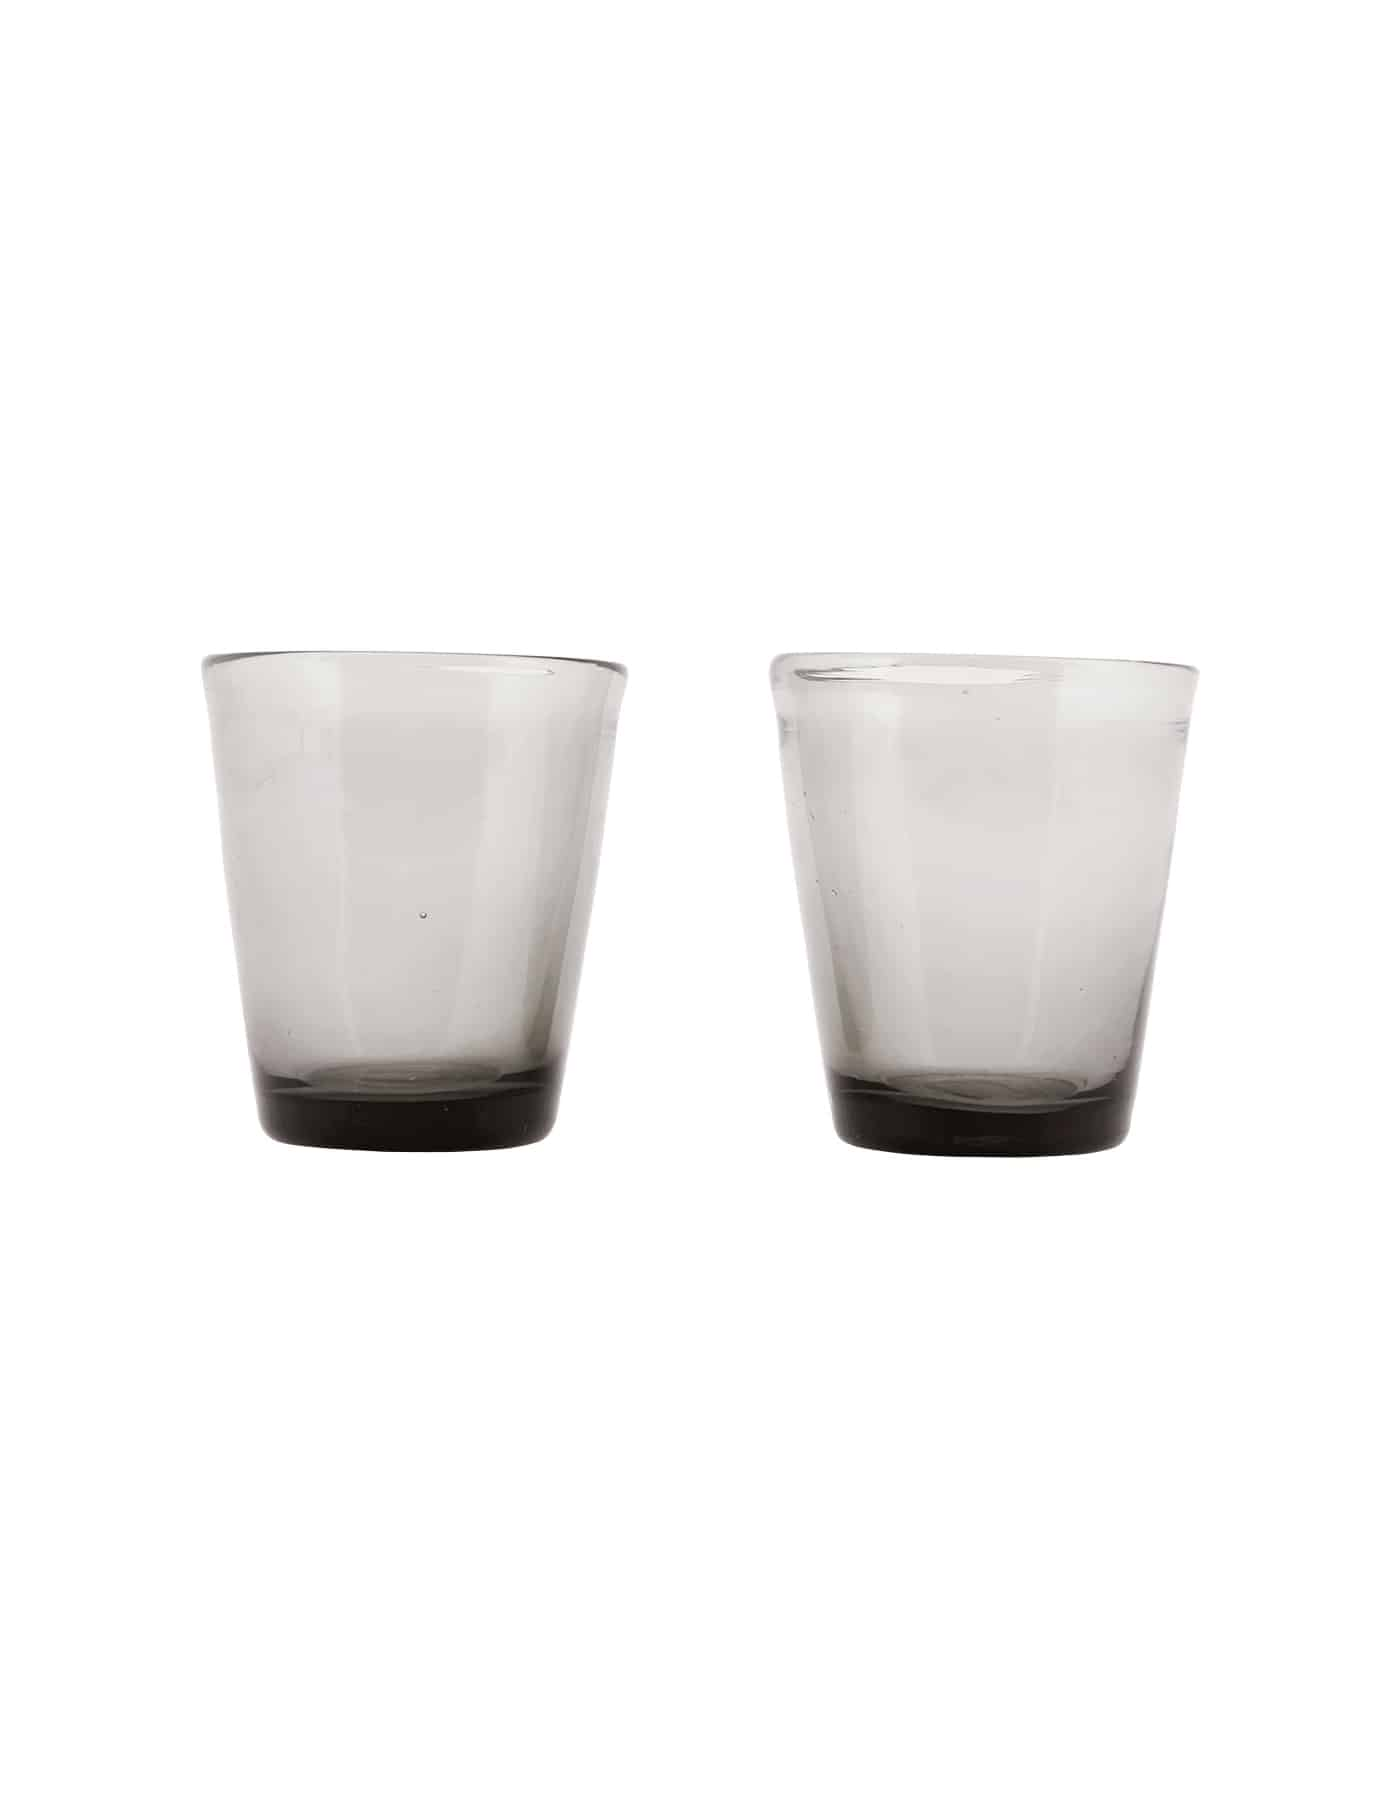 Houston Smoked Water Glasses, House Doctor